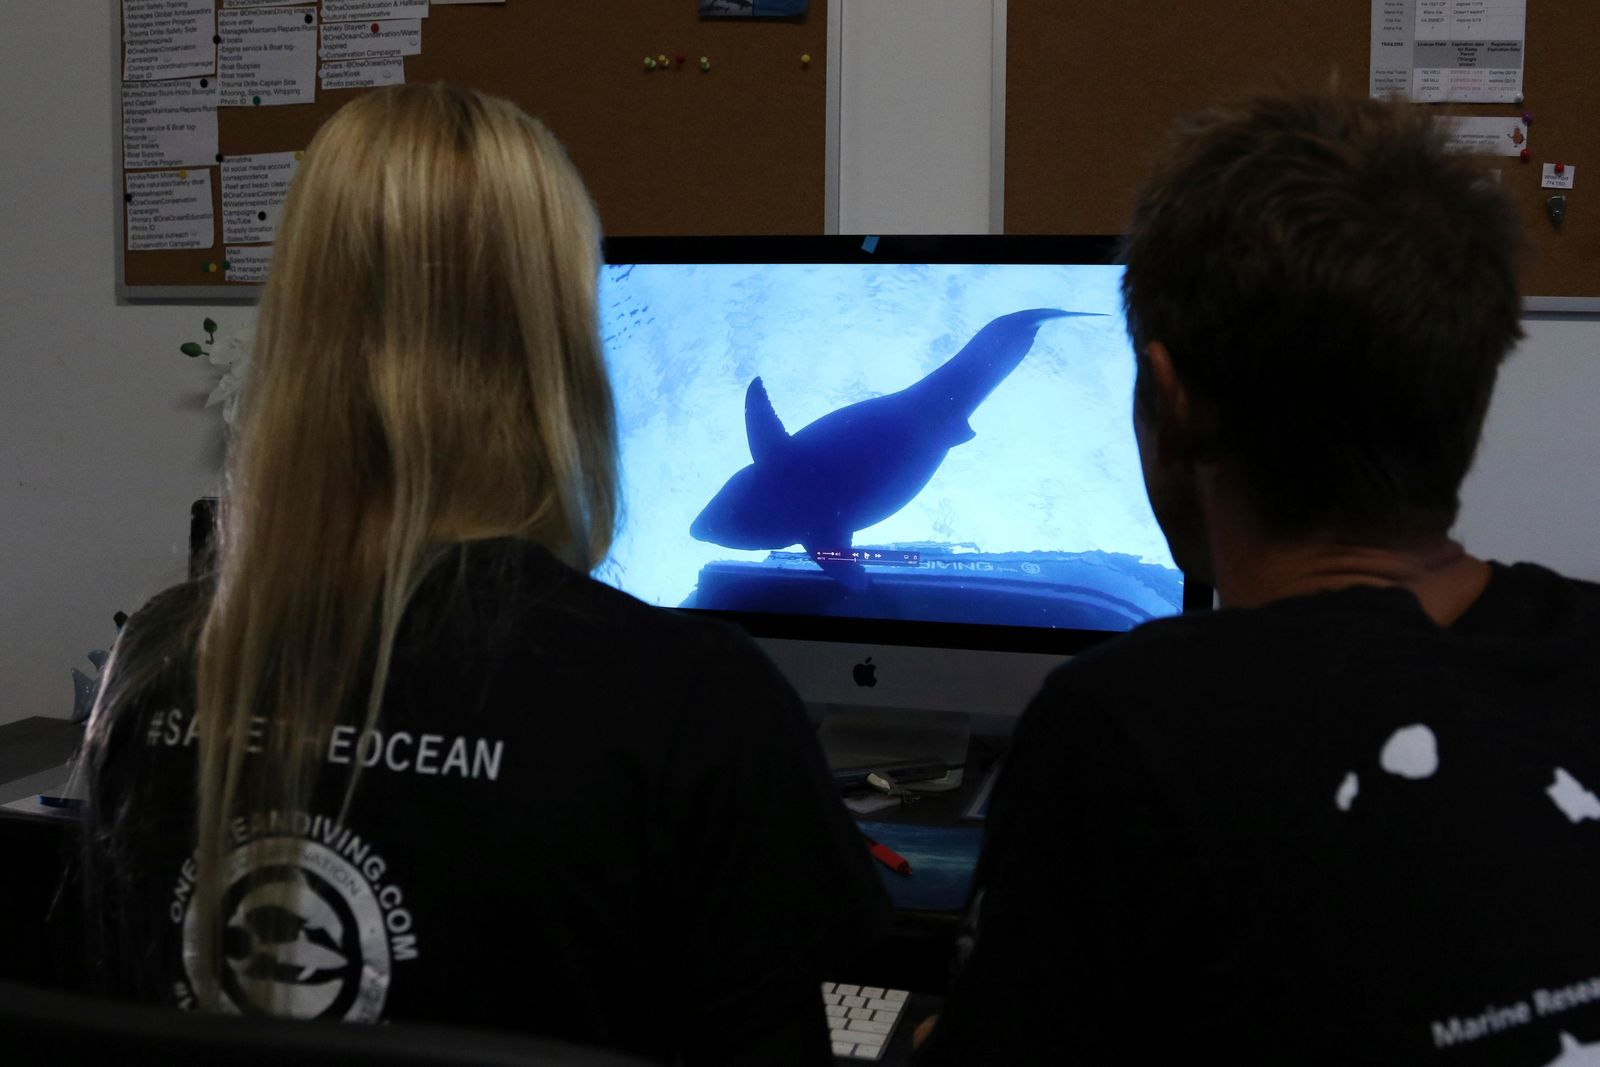 Juan Oliphant, right, and Ocean Ramsey, co-founders of One Ocean Diving and Research, look at footage their encounter with a great white shark, Thursday, Jan. 17, 2019 in Haleiwa, Hawaii. (AP Photo/Caleb Jones)